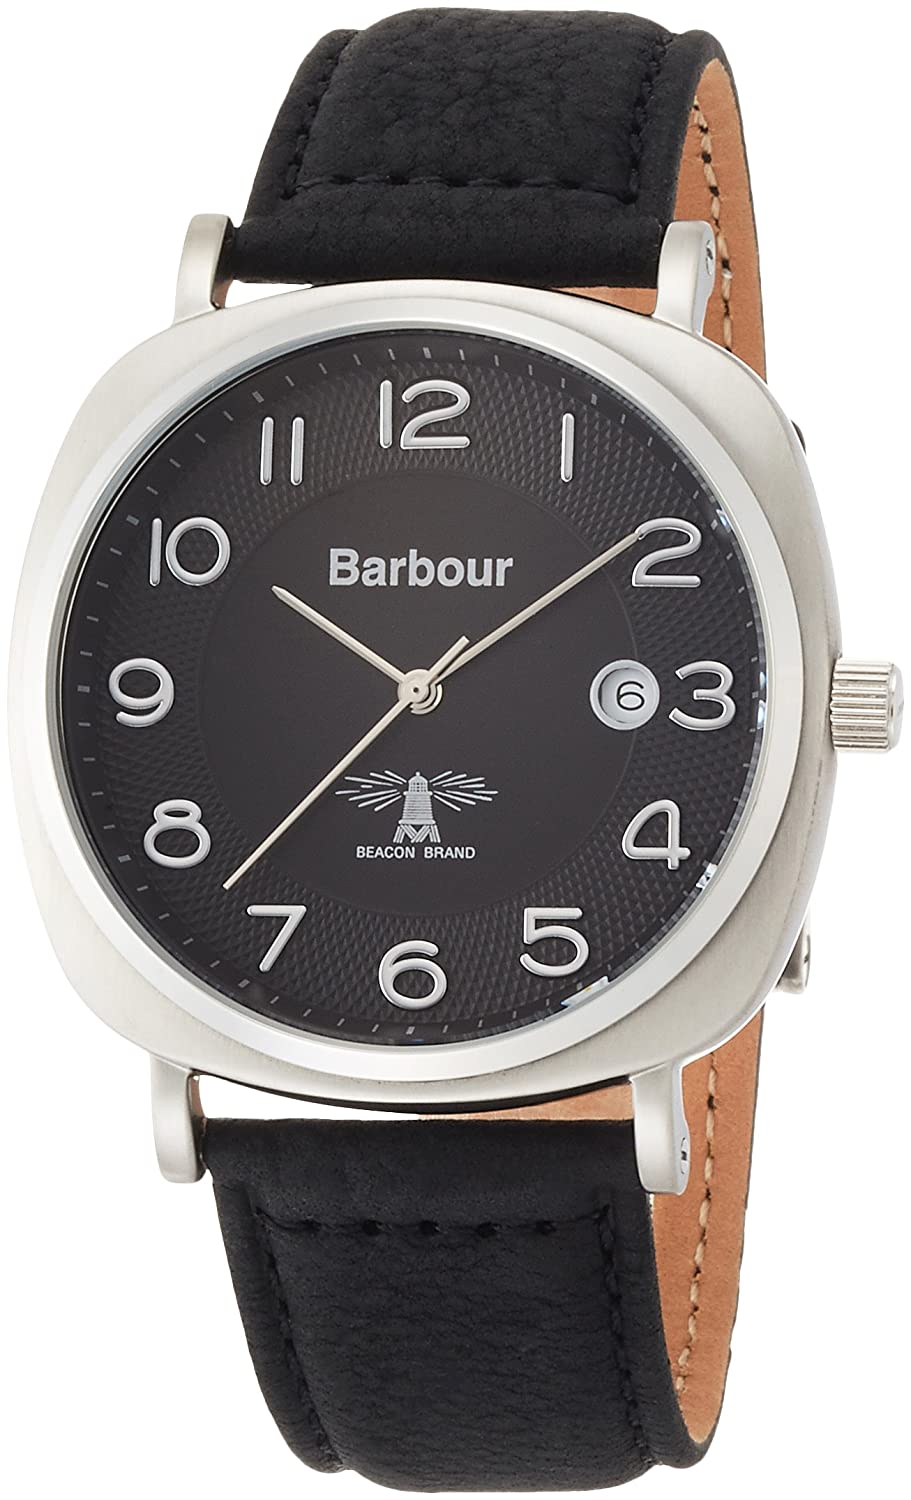 Barbour BB018SLBK Mens Beacon Black Leather Strap Watch: Barbour: Amazon.co. uk: Watches